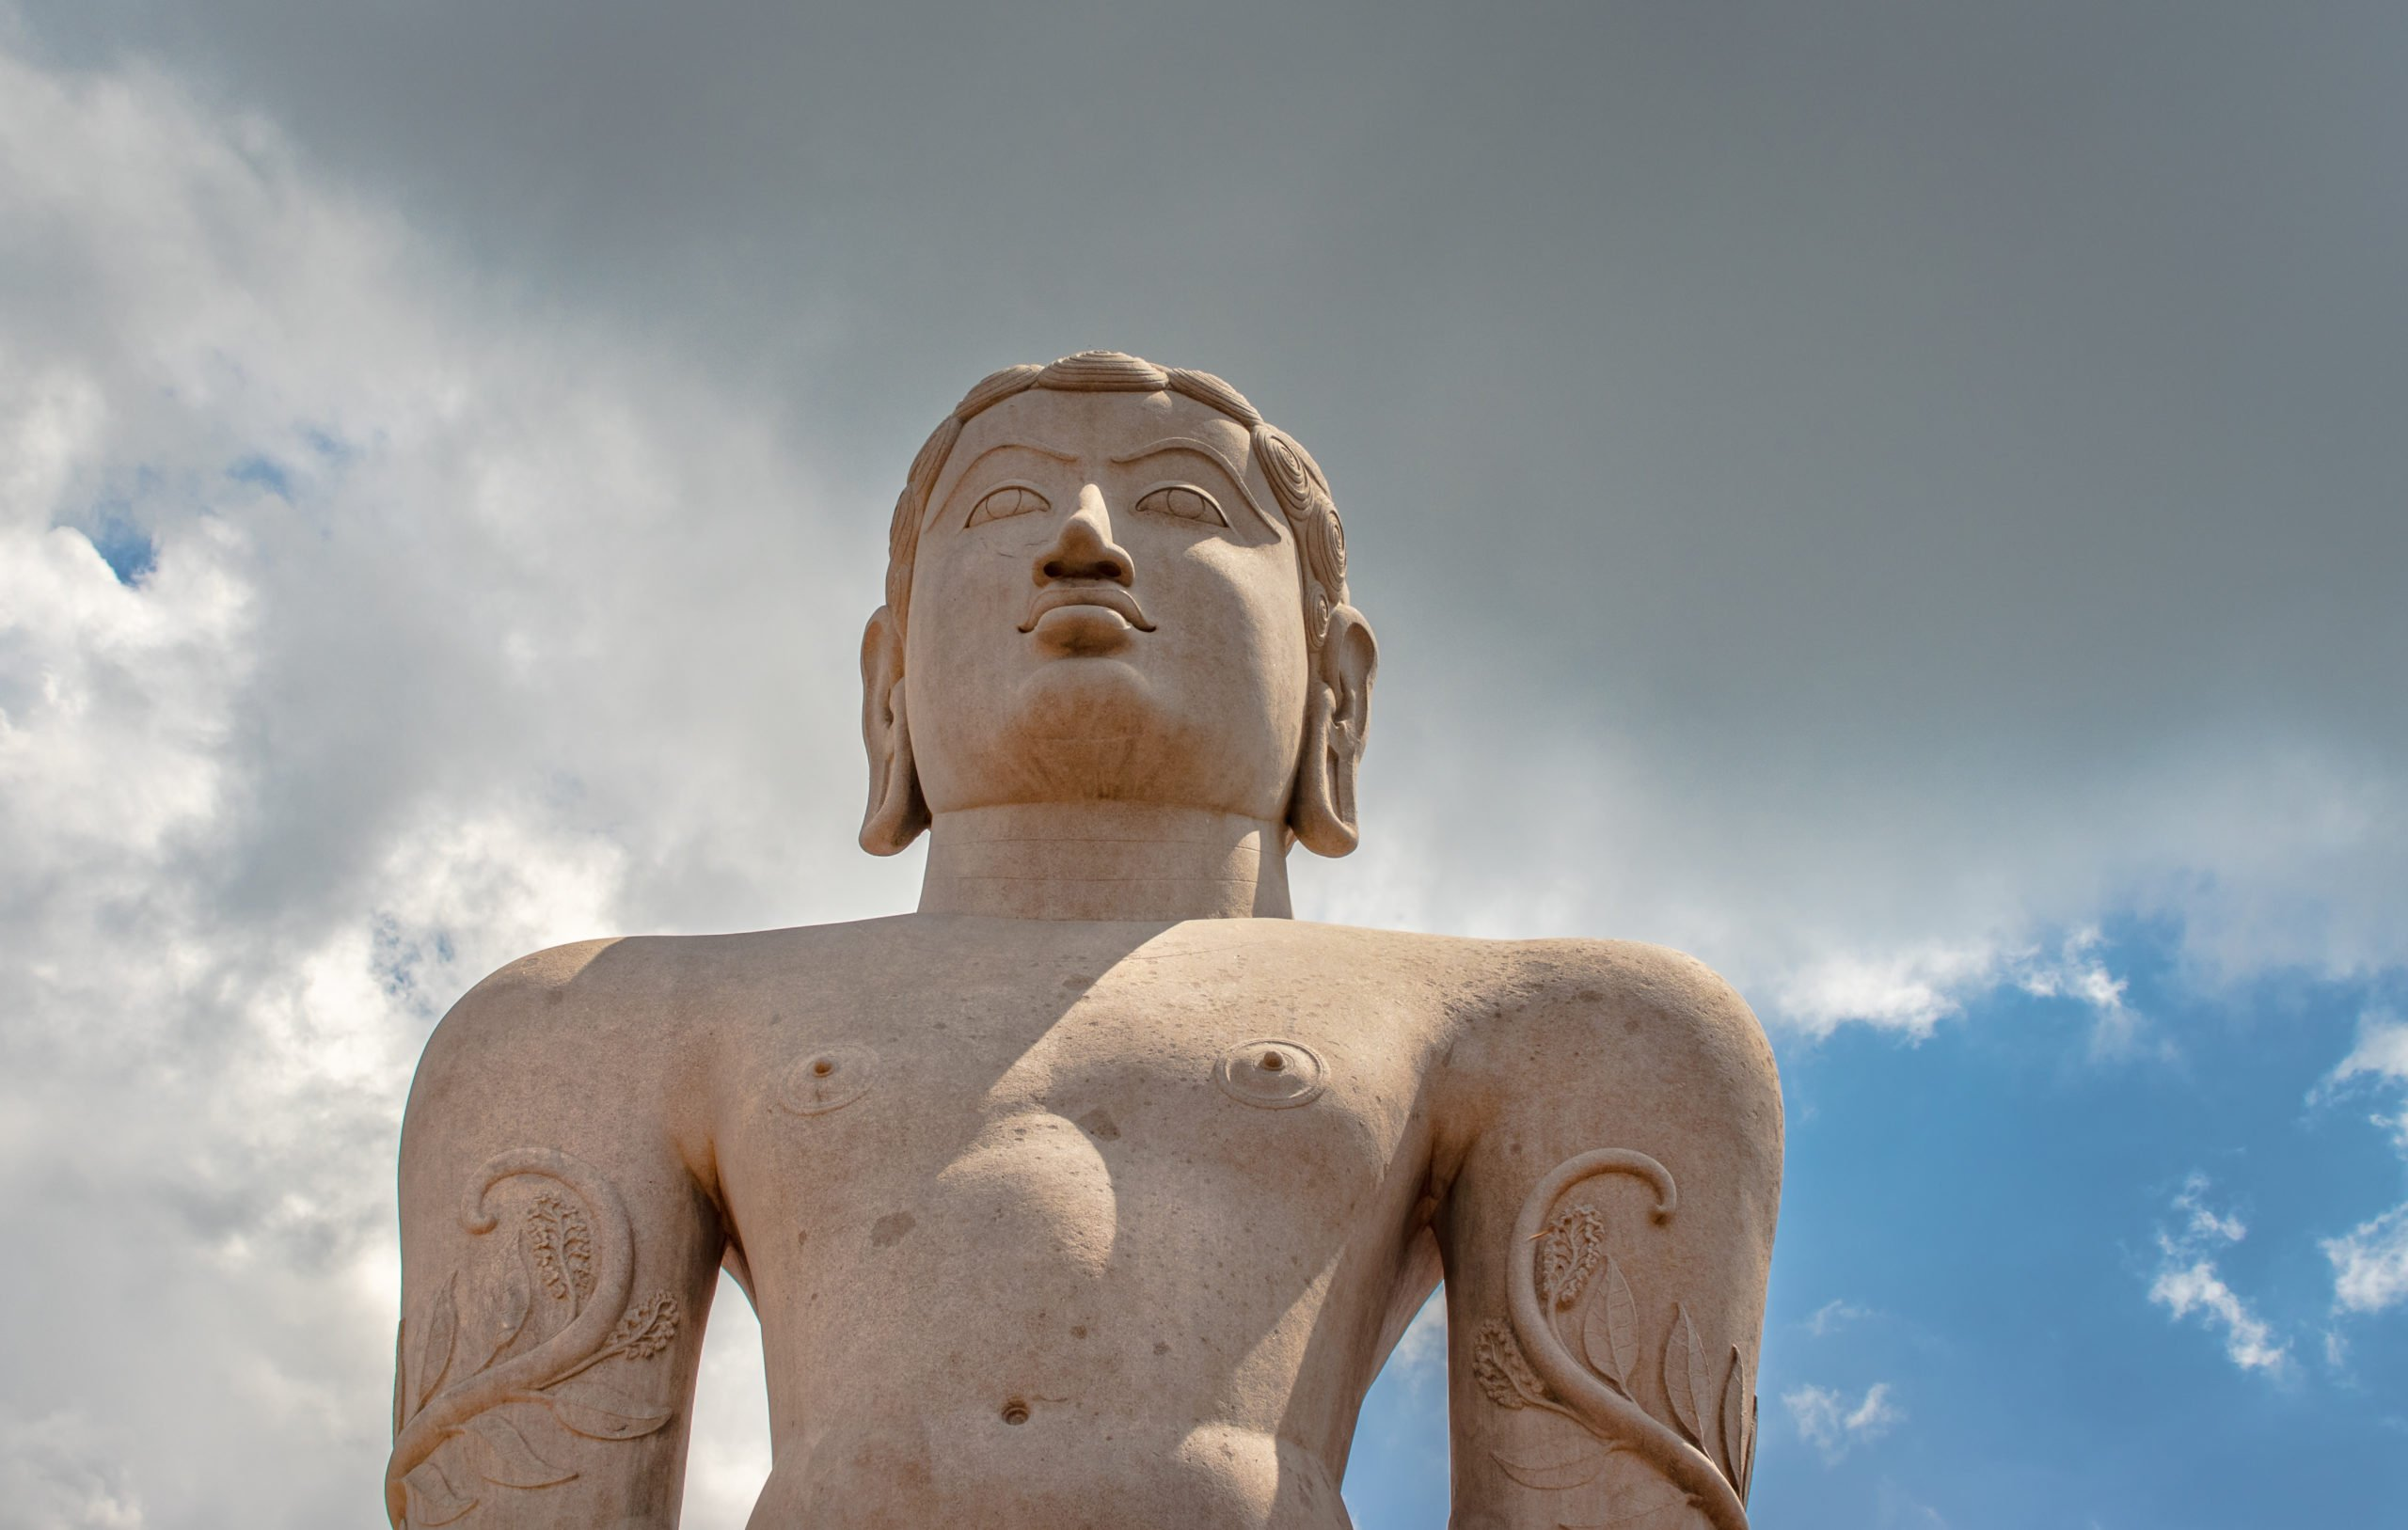 Listen To The Story Of Goateswara's Life's Story Since Birth, Renunciation, Enlightenment & Salvation In Our Tour To The World's Tallest Monolithic Statue At Shravanabelagola